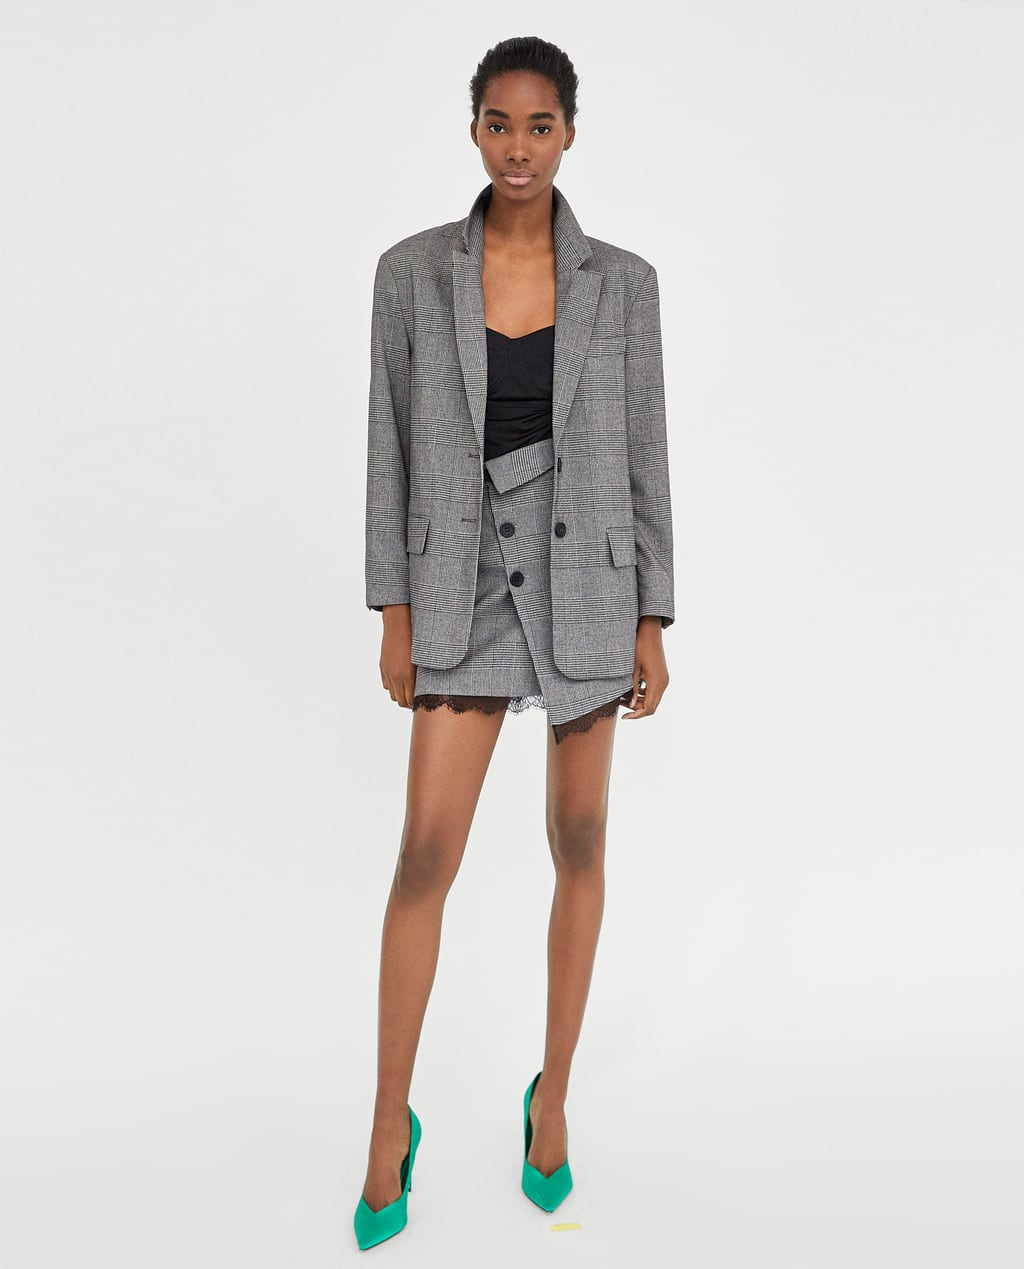 WGSN said skirt suits with shorter hemlines like this set from Zara offer an feminine replacement to trousers.